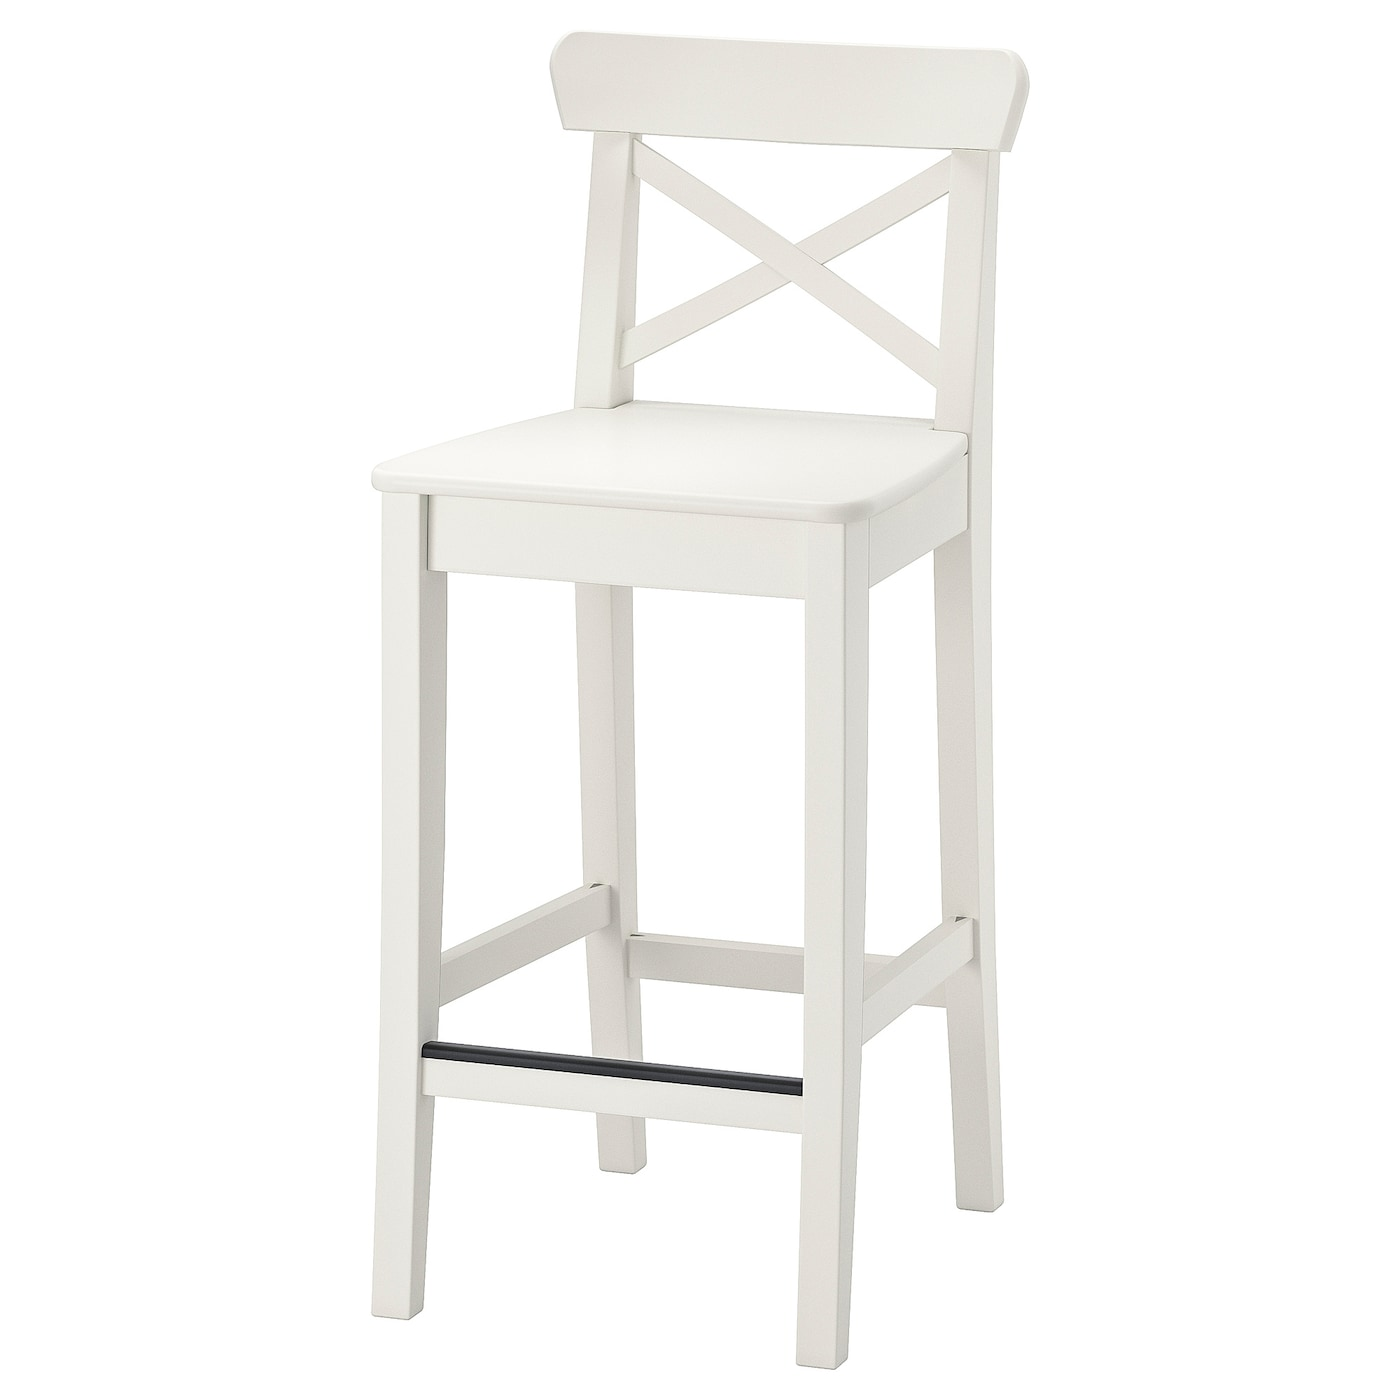 Picture of: Ingolf Bar Stool With Backrest White 24 3 4 Ikea